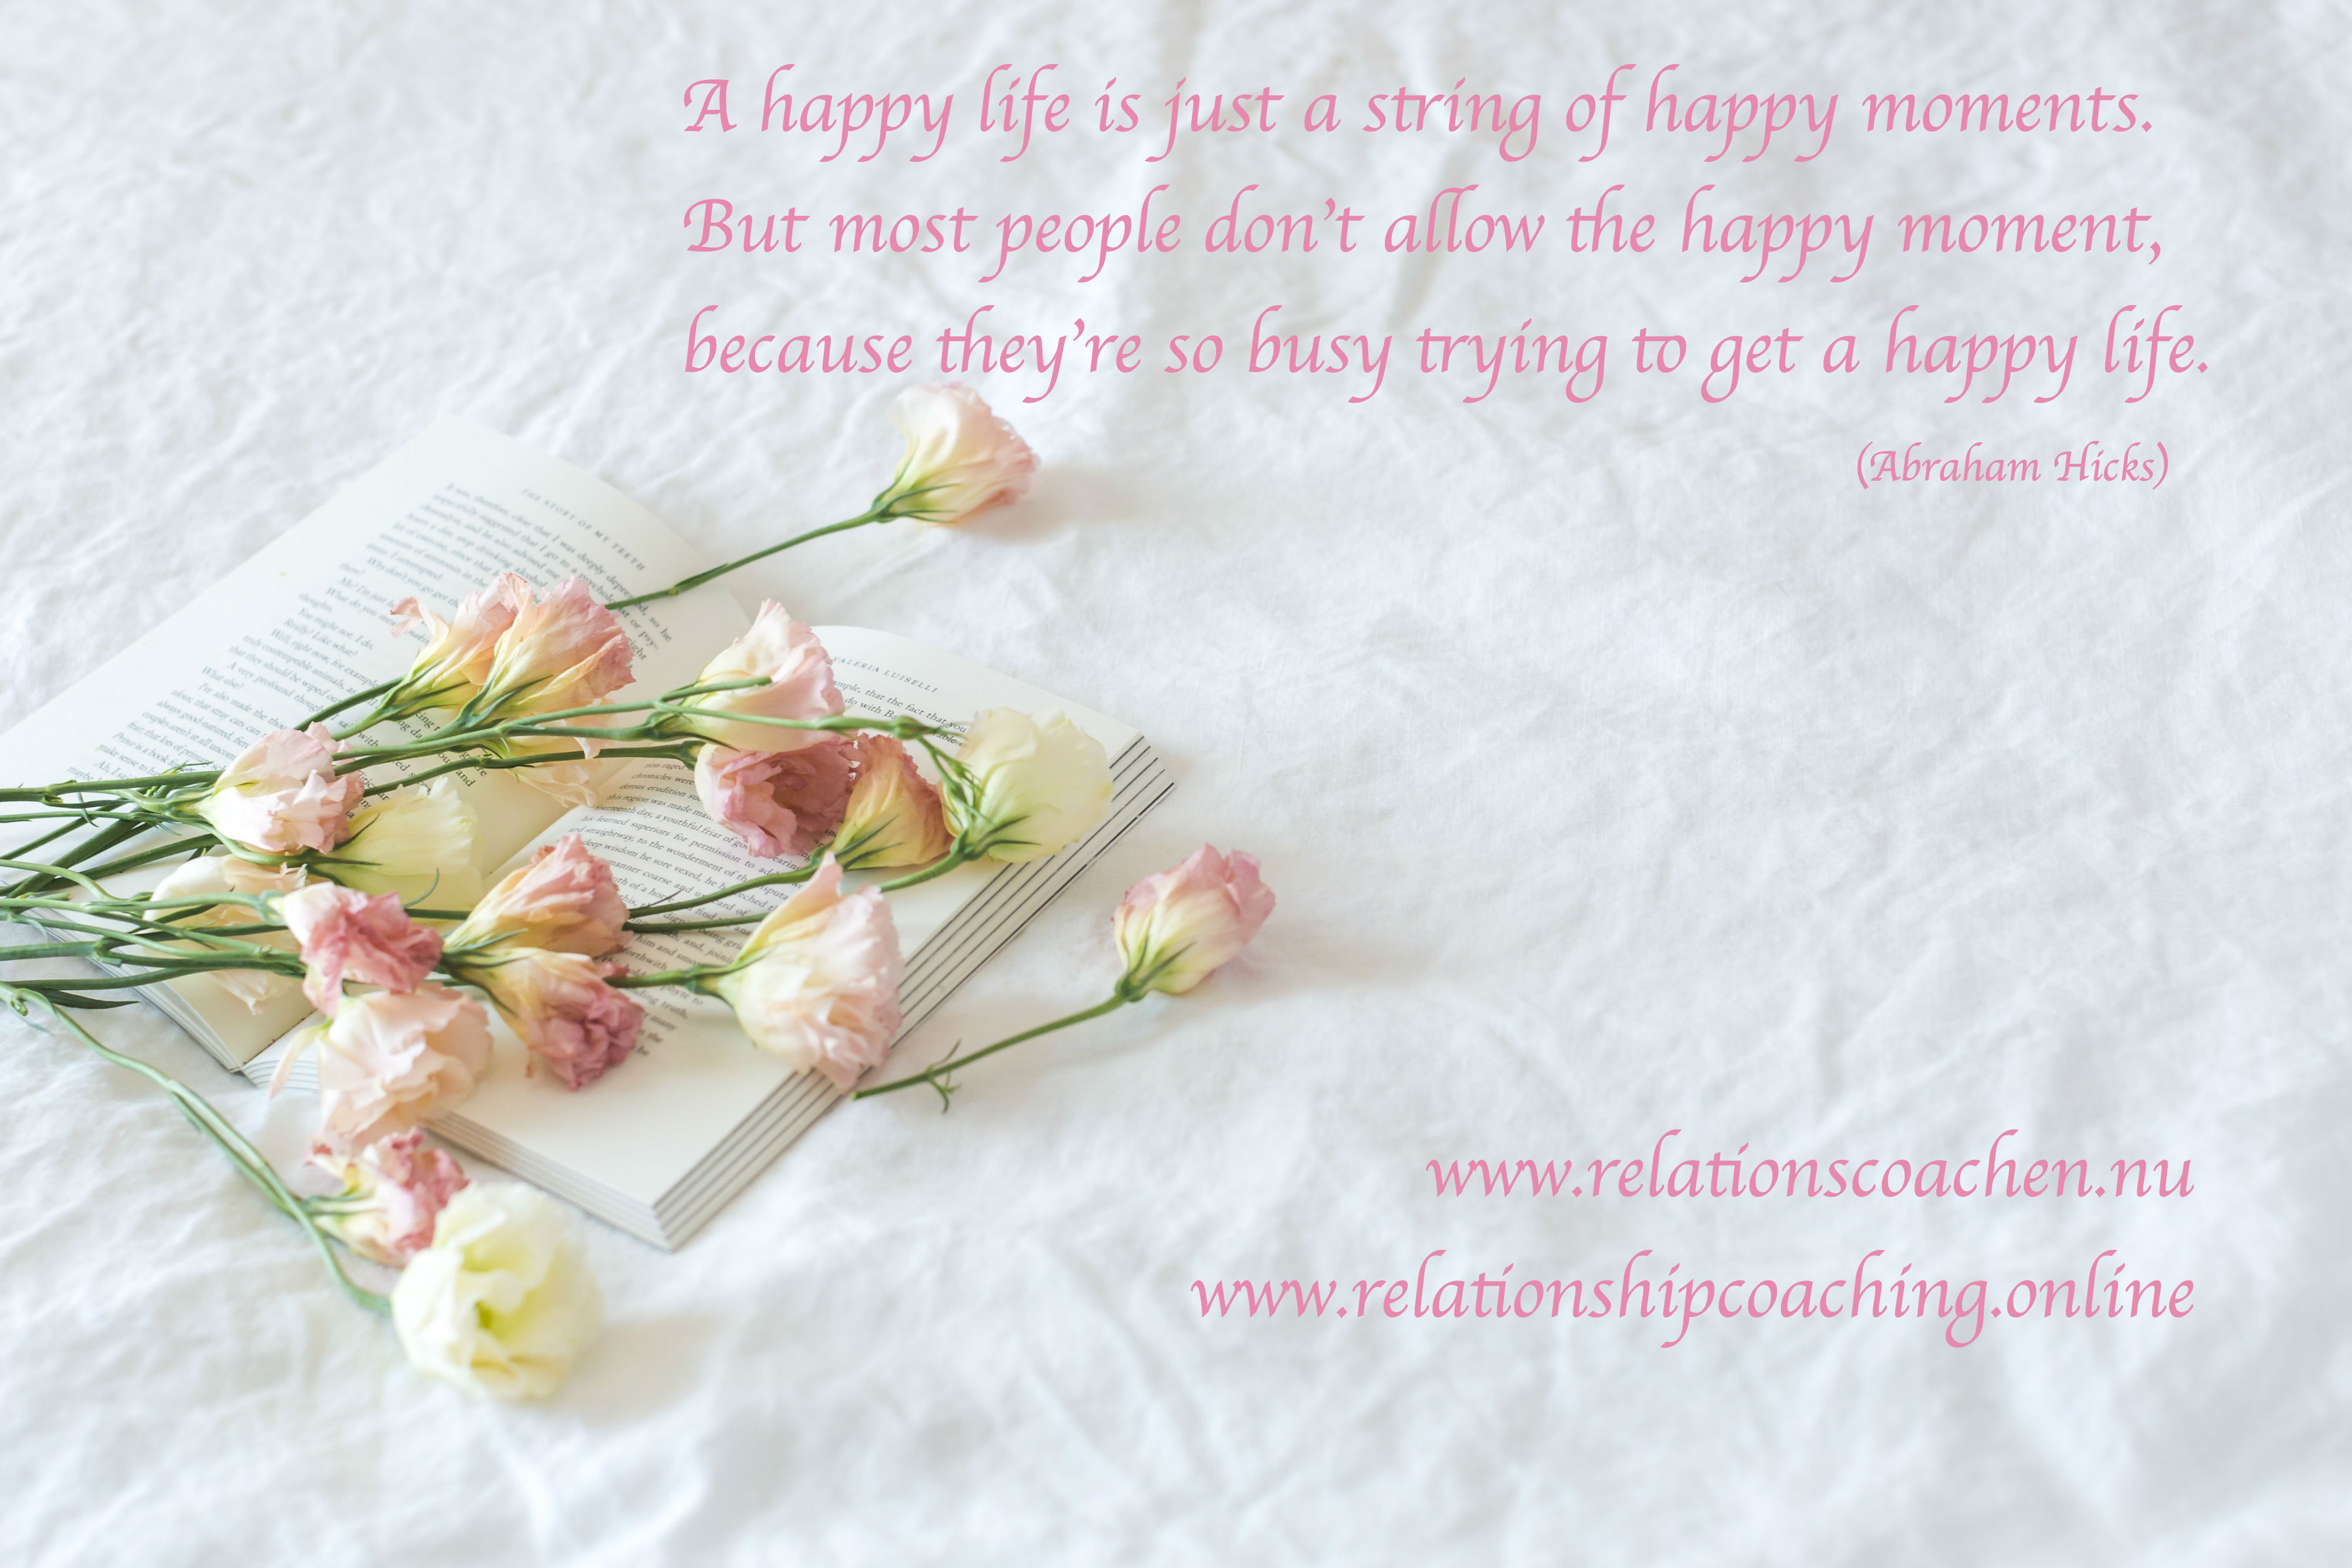 A happy life is just a string of happy moments